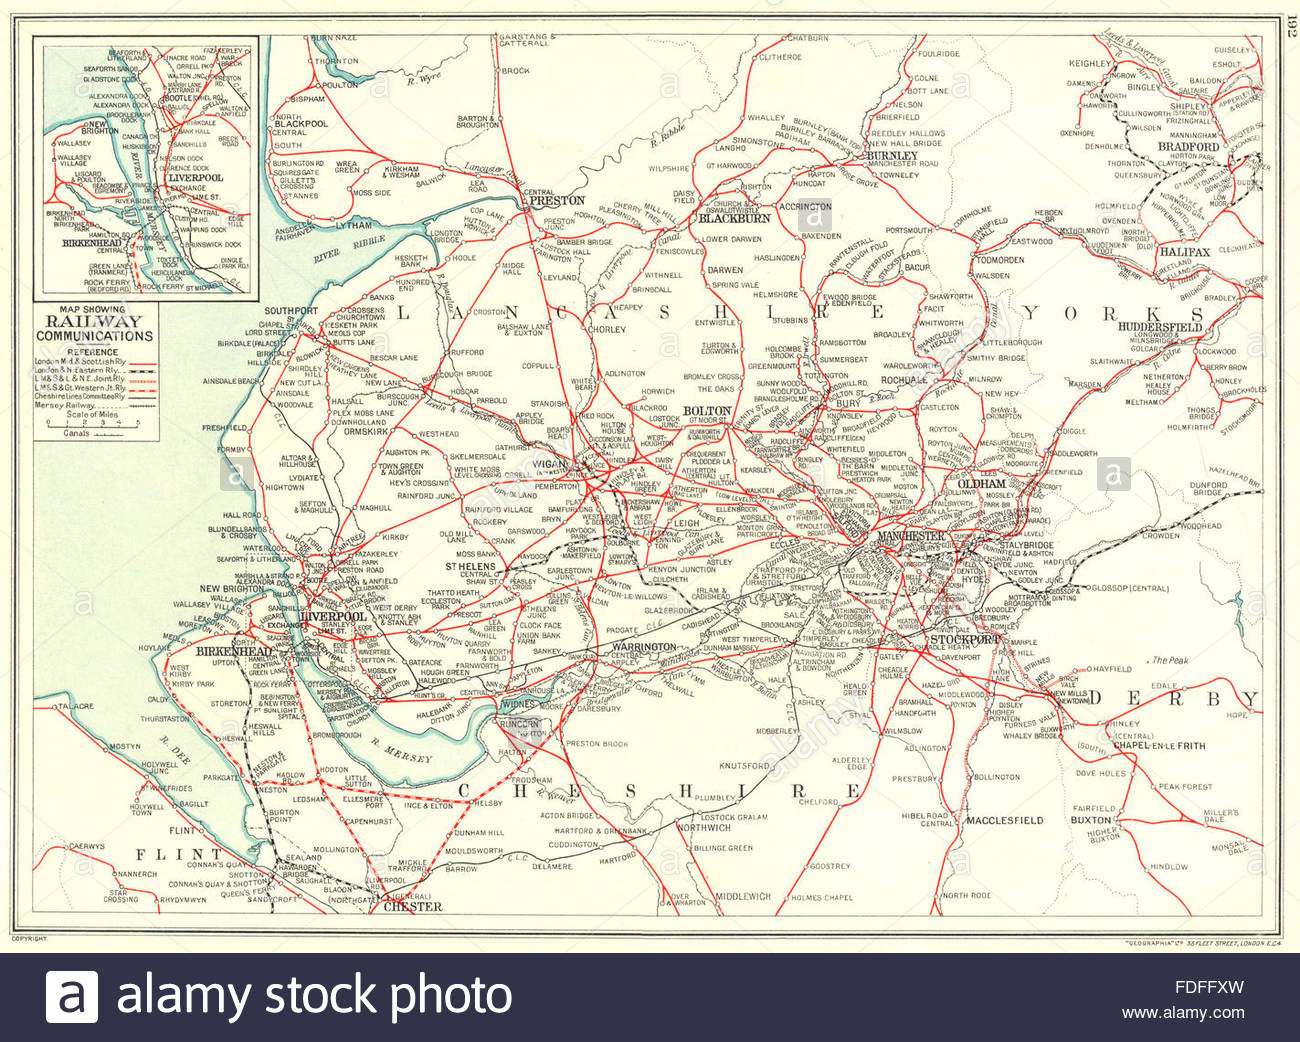 LANCASHIRE Cheshire Yorkshire Map showing Railway munications 1935 Stock Image